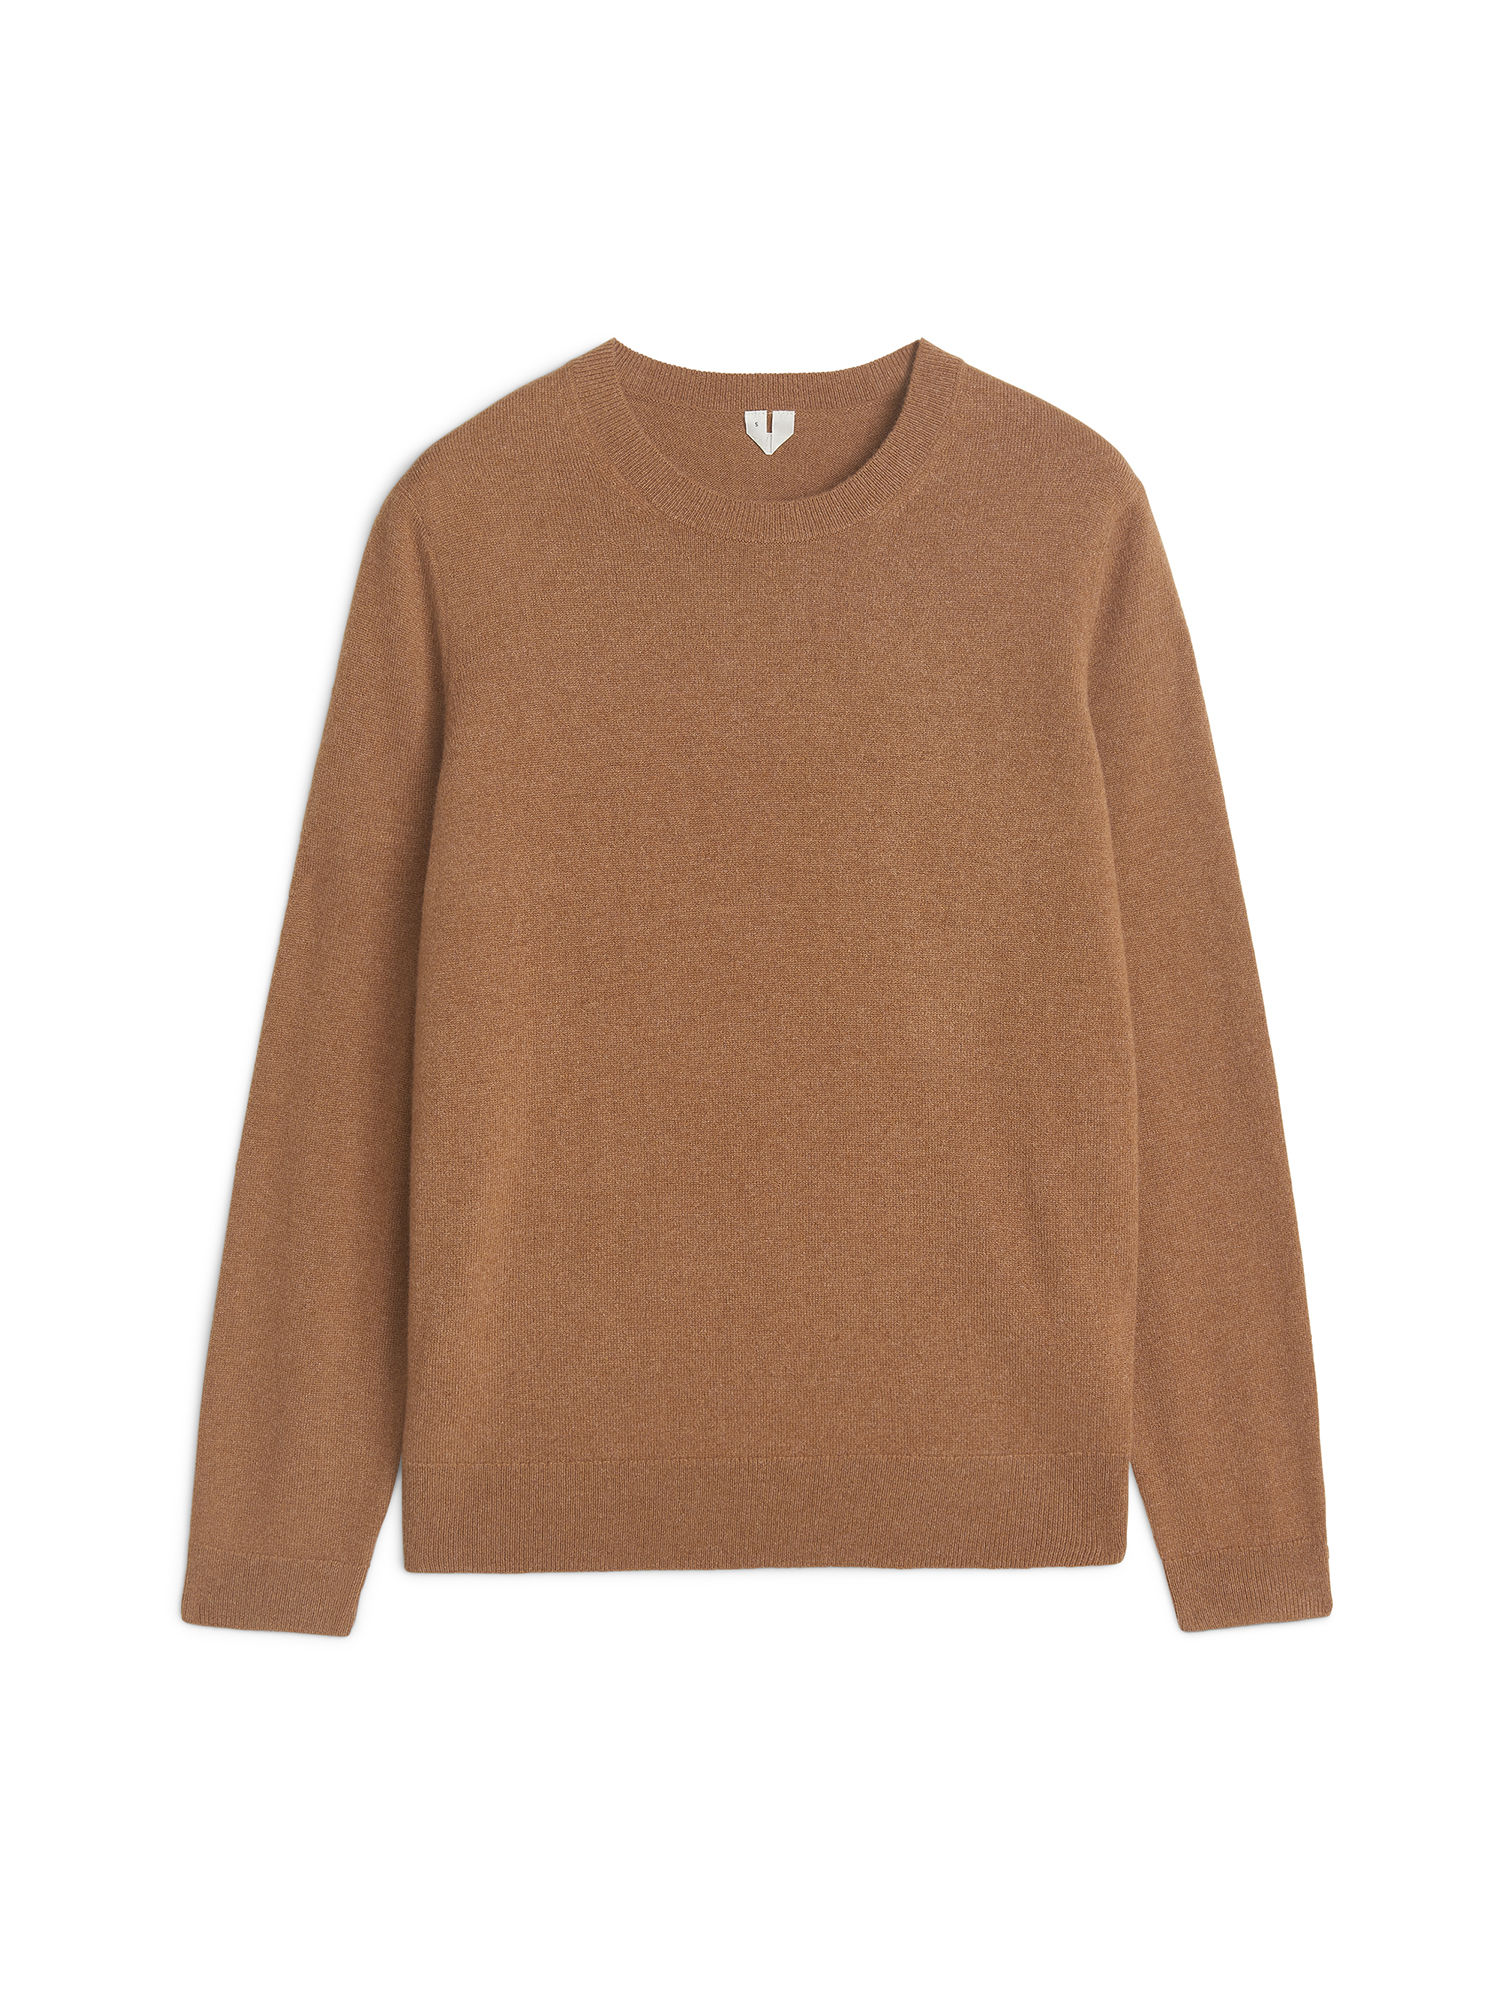 Fabric Swatch image of Arket cashmere crew-neck jumper in beige